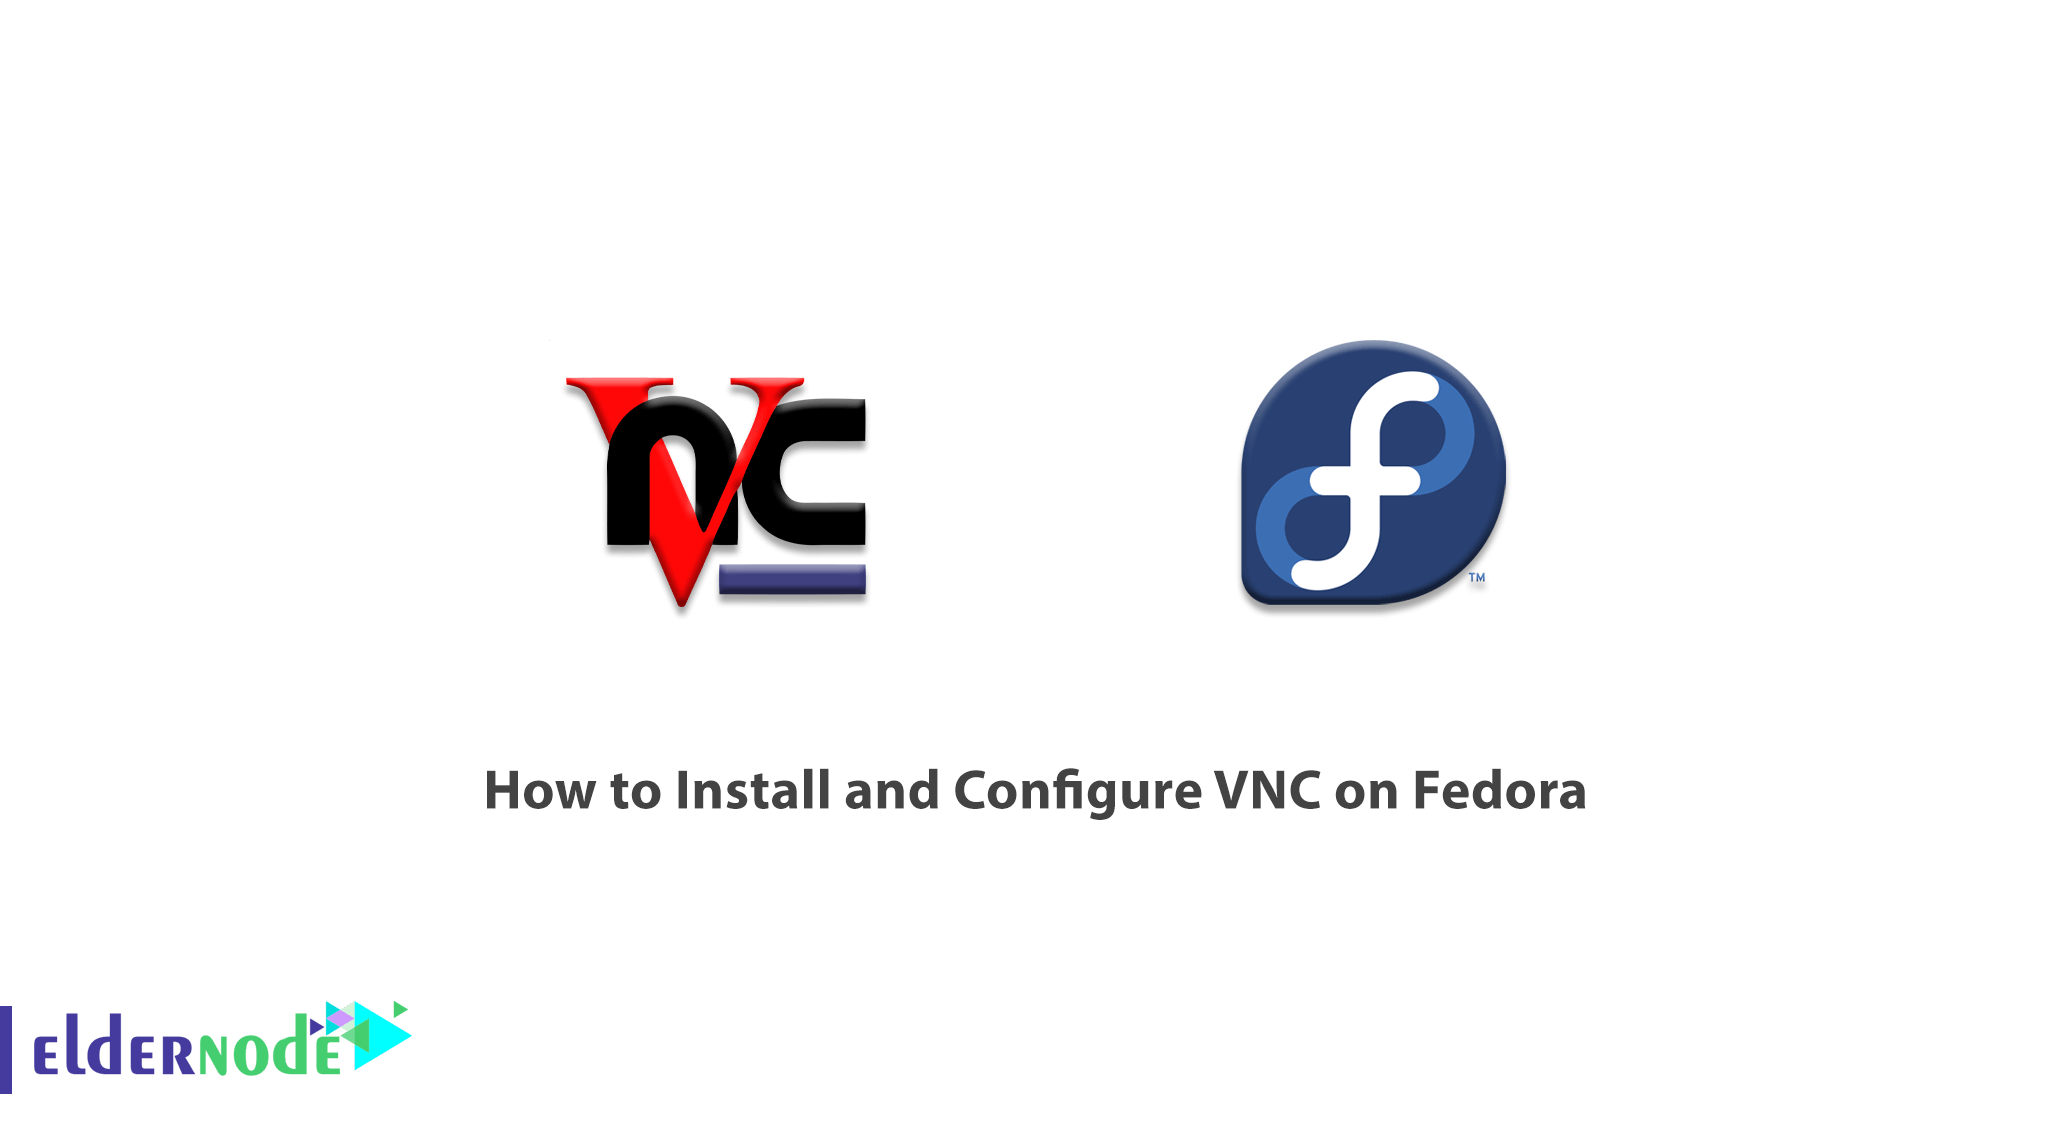 How to Install and Configure VNC on Fedora